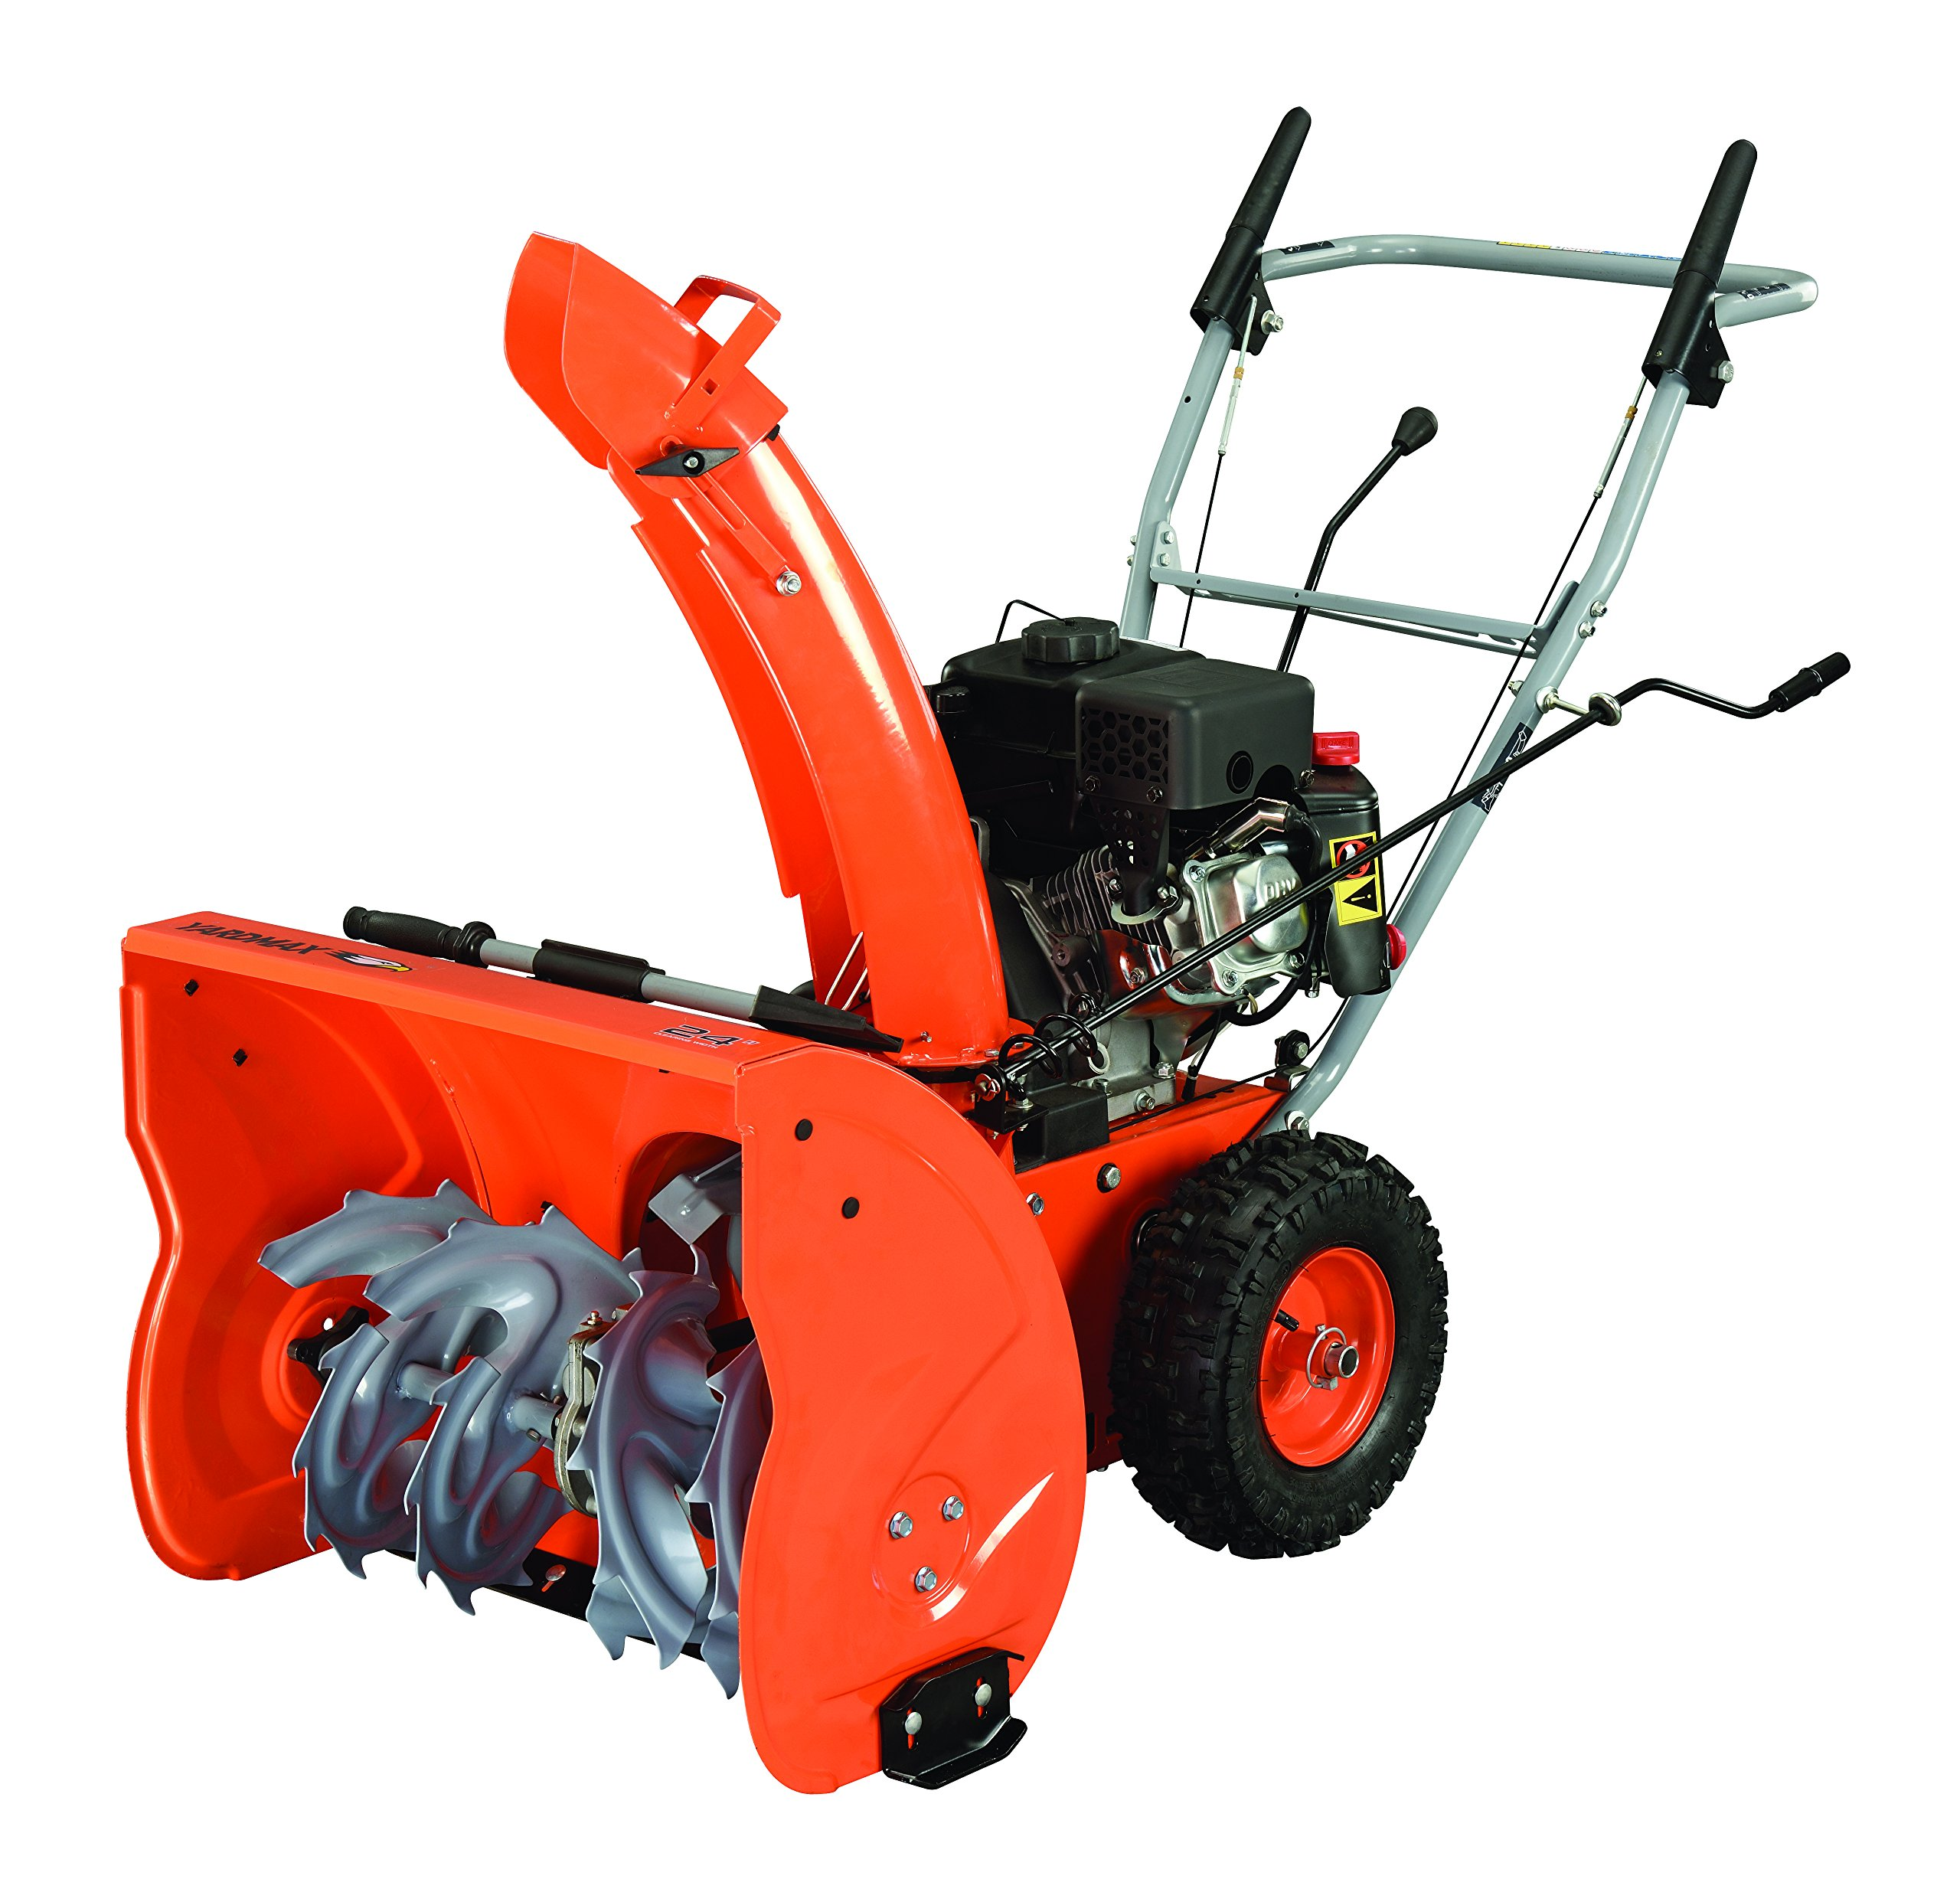 YARDMAX YB6270 Two-Stage Snow Blower, LCT Engine, 7.0HP, 208cc, 24''